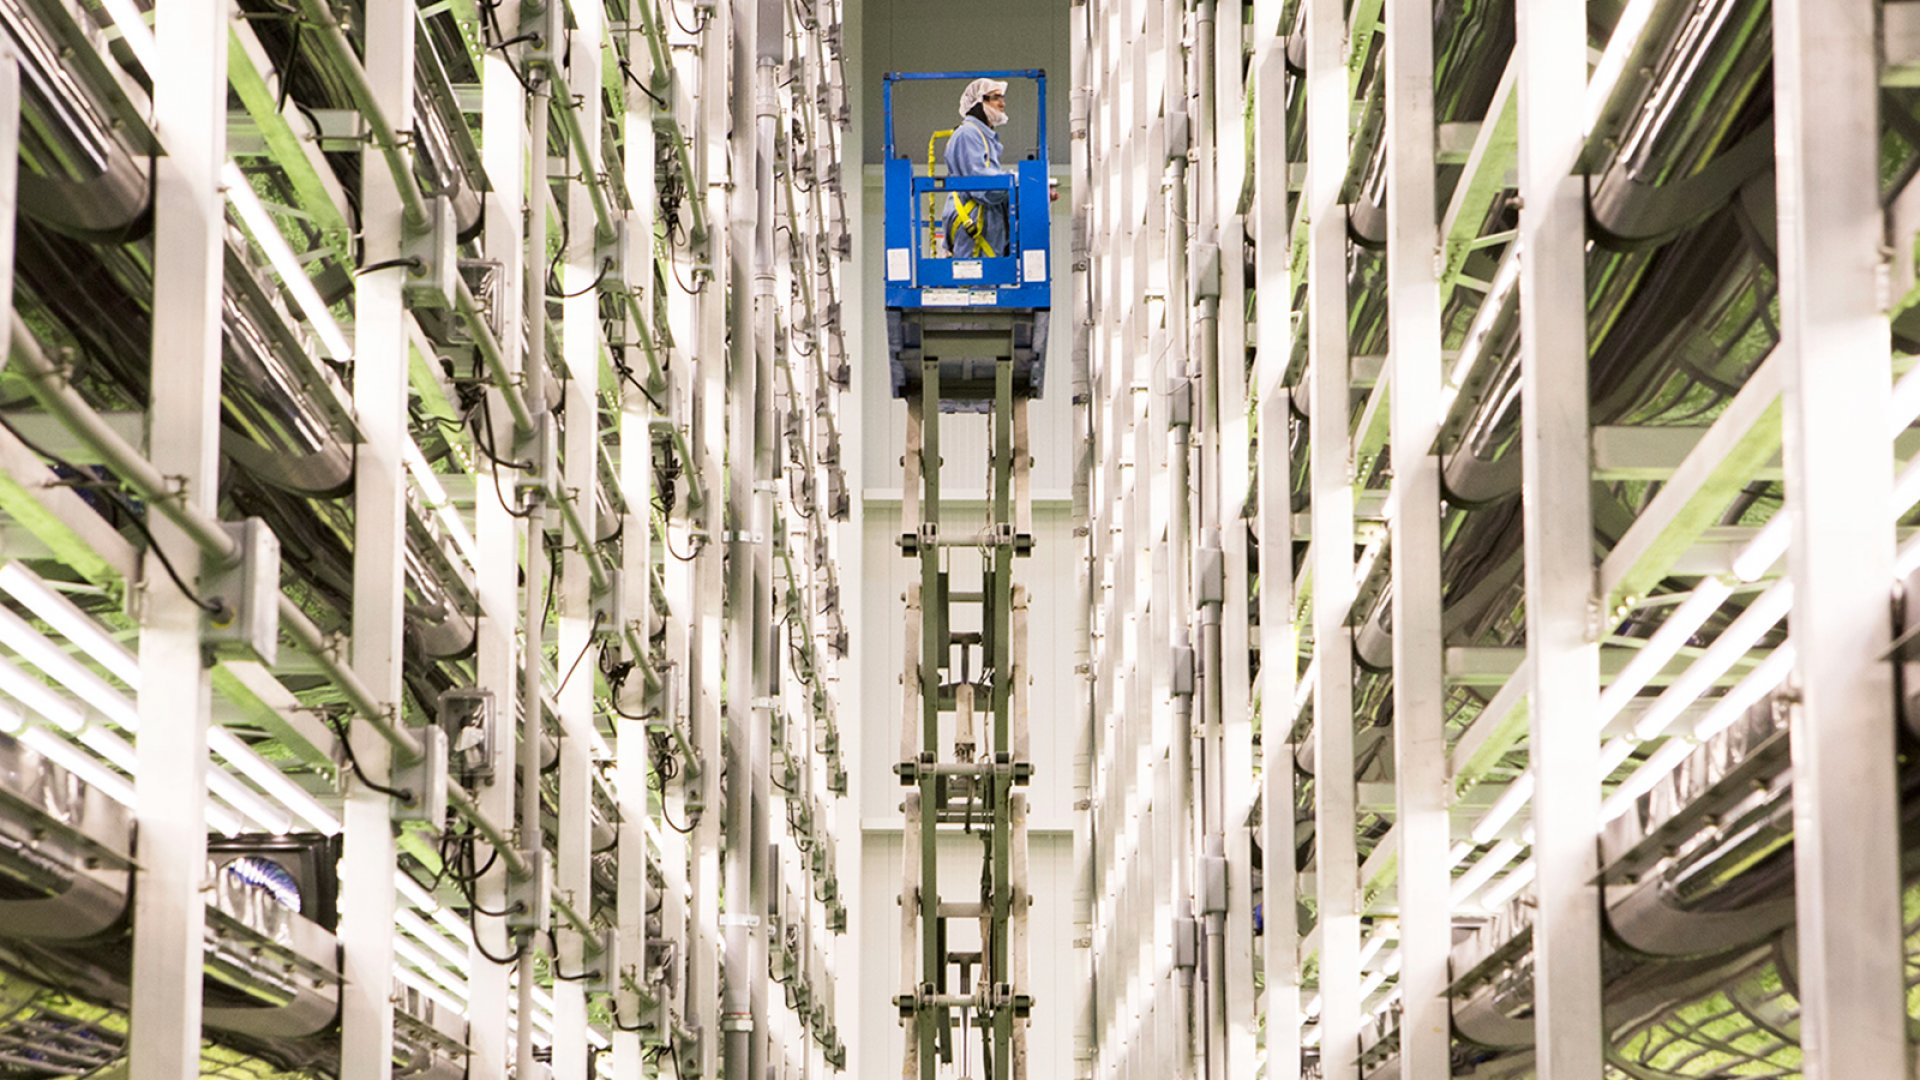 An Aerofarms employee uses a scissor-lift to check the vertically-growing greens within the company's Newark, NJ headquarters.